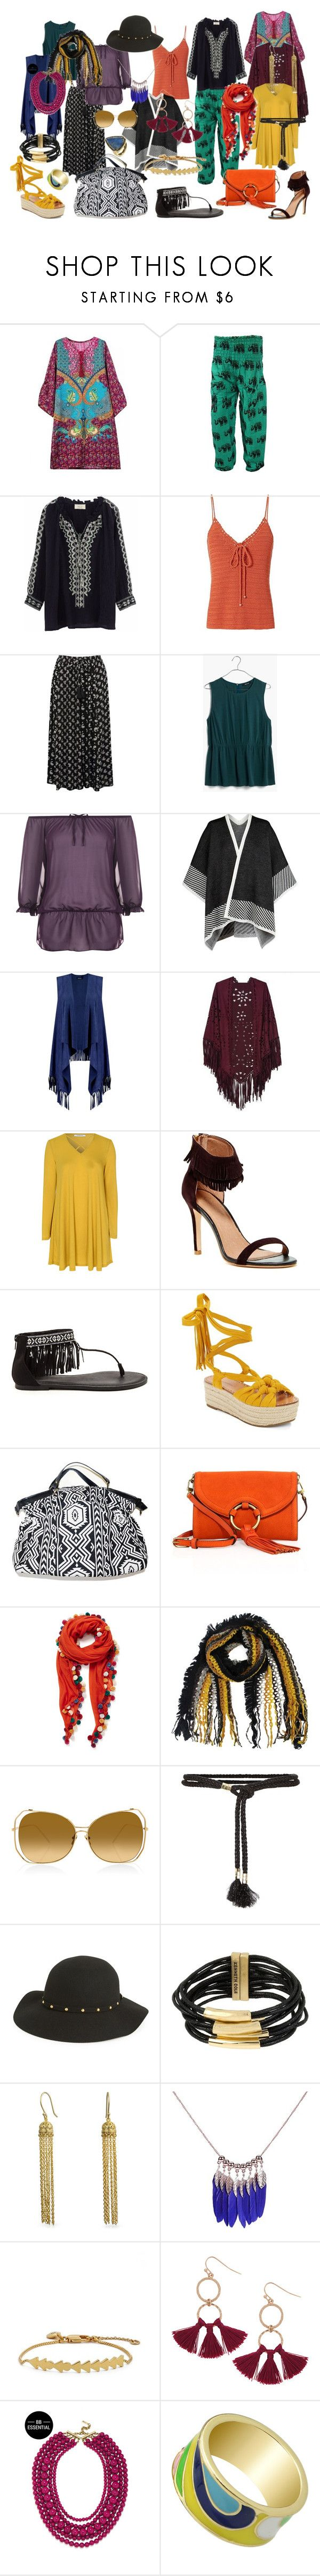 """084. Summer Boho capsule for Pure Spring"" by sollis ❤ liked on Polyvore featuring BA&SH, Exclusive for Intermix, M&Co, Madewell, WearAll, Boohoo, Glamorous, Joie, Sigerson Morrison and Tory Burch"